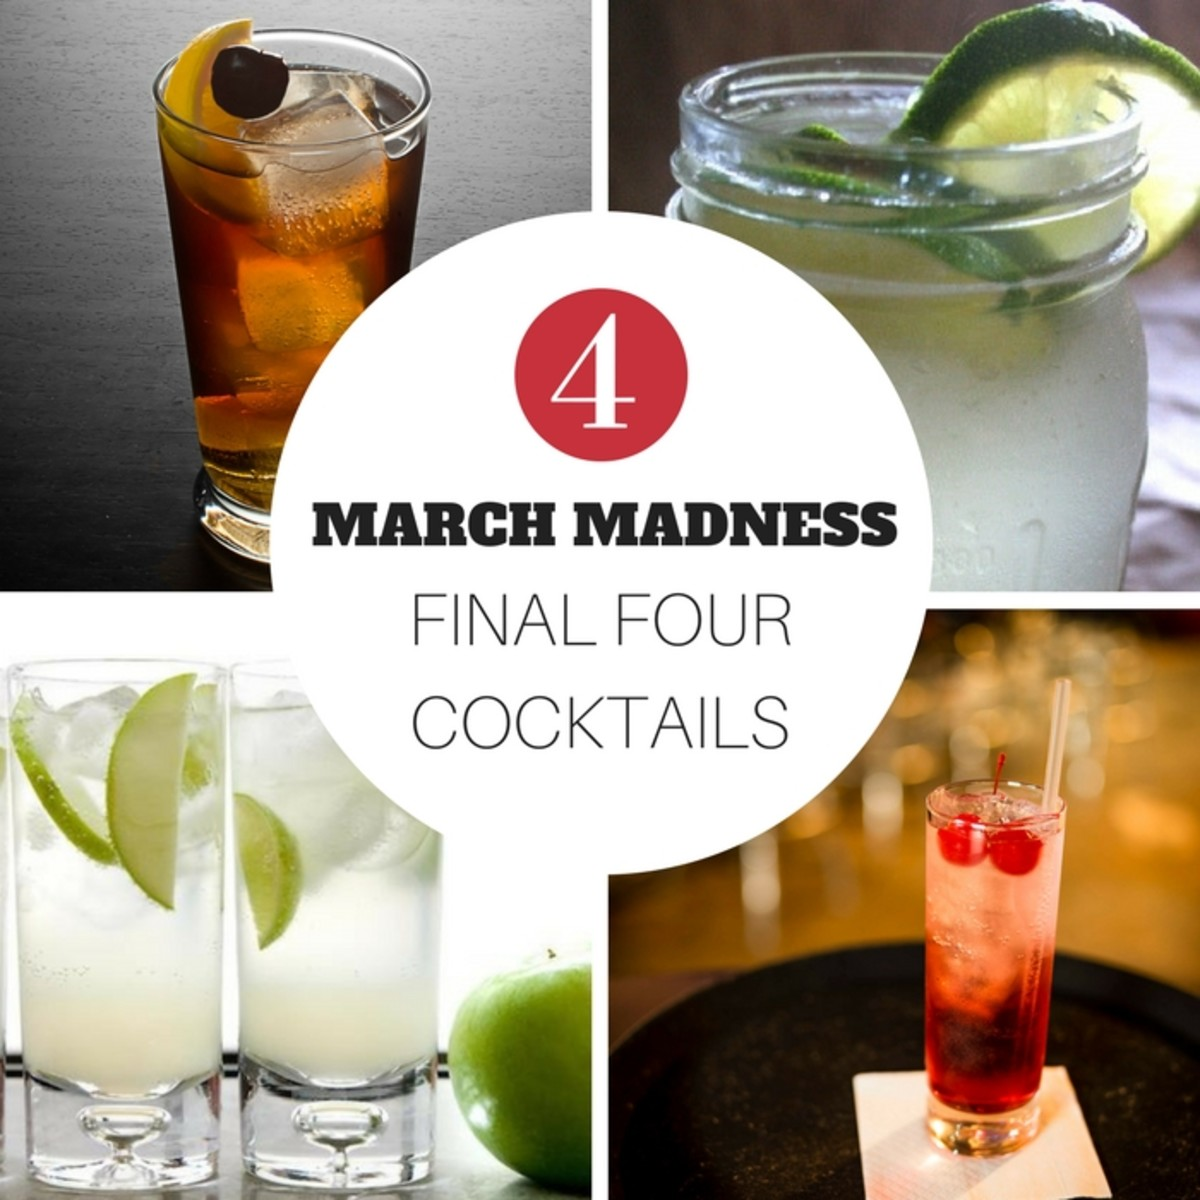 March Madness Final Four Cocktails